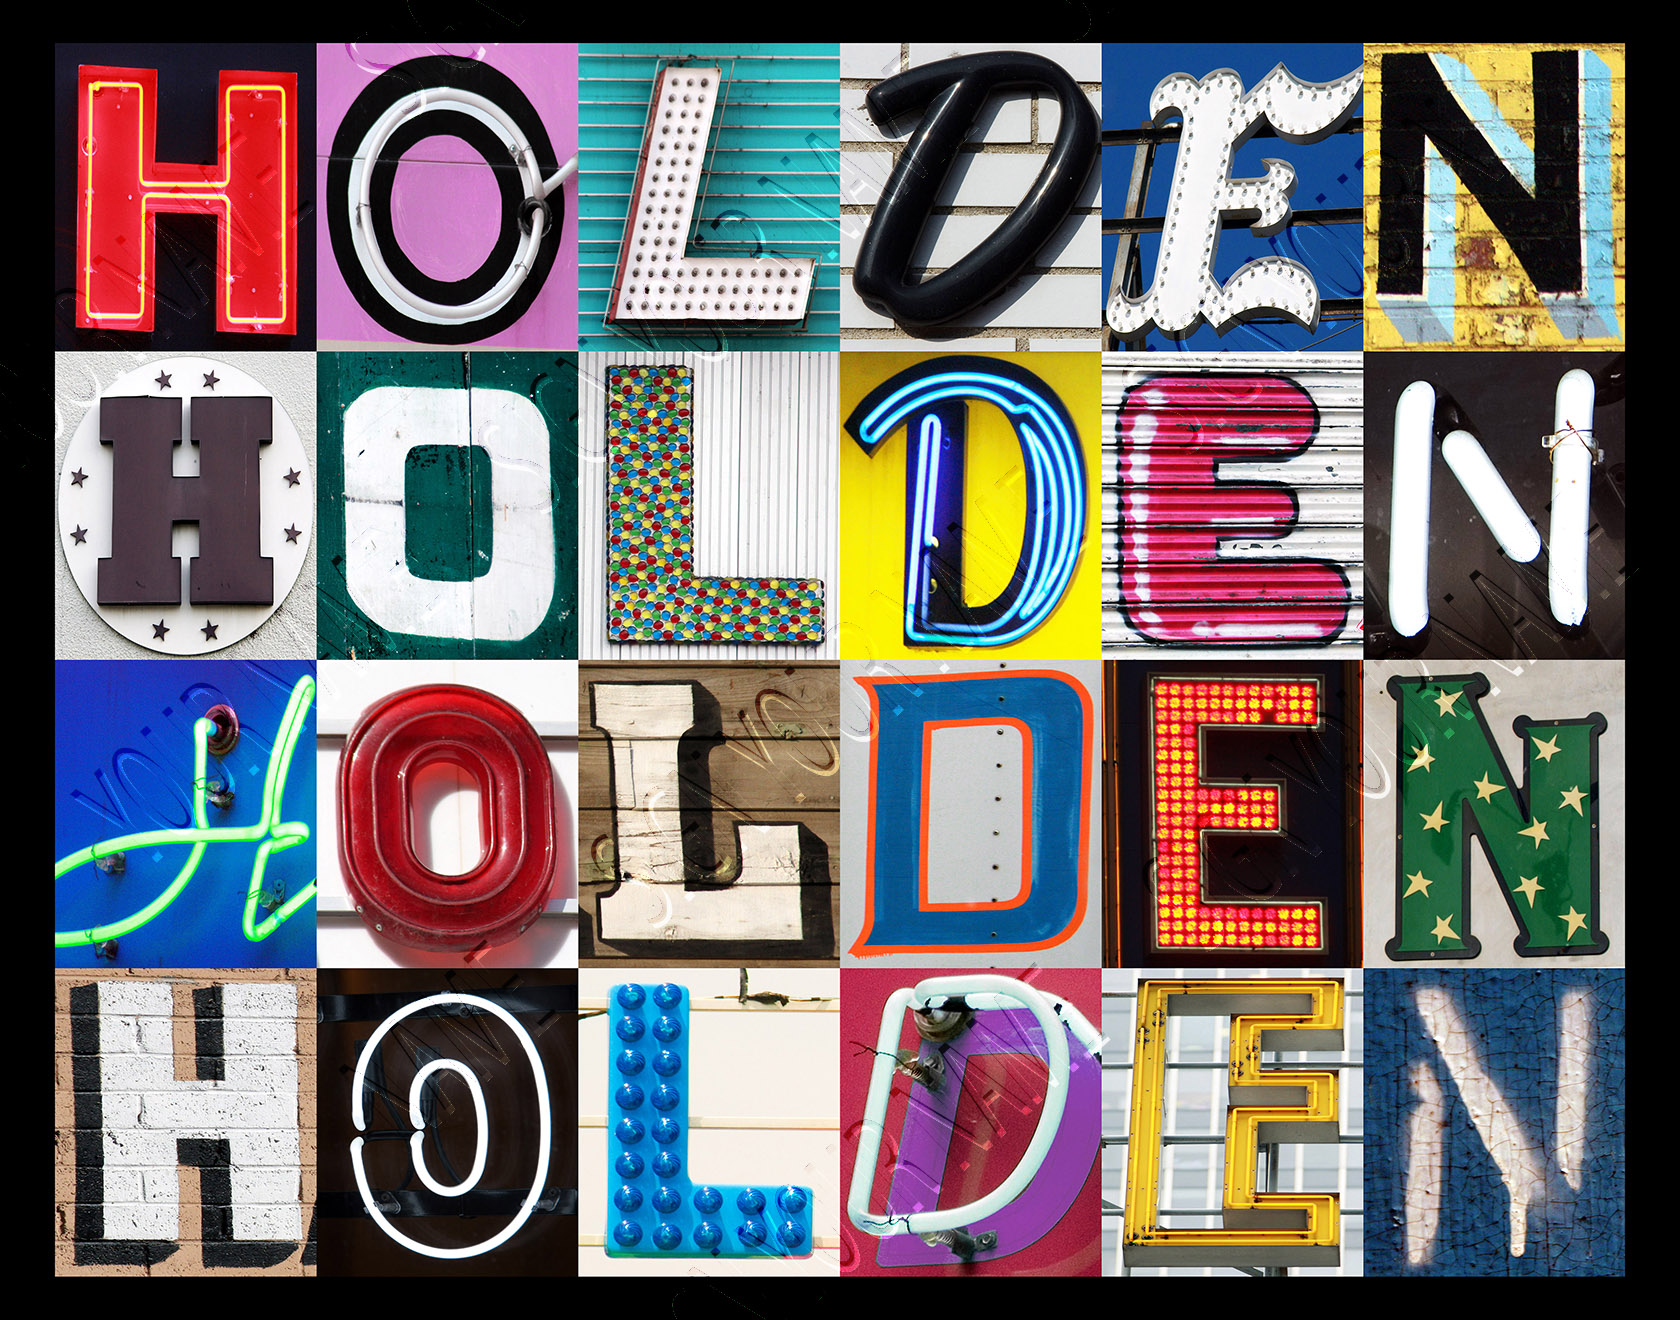 https://www.etsy.com/listing/203493312/personalized-poster-featuring-holden-in?ref=shop_home_active_1&ga_search_query=holden